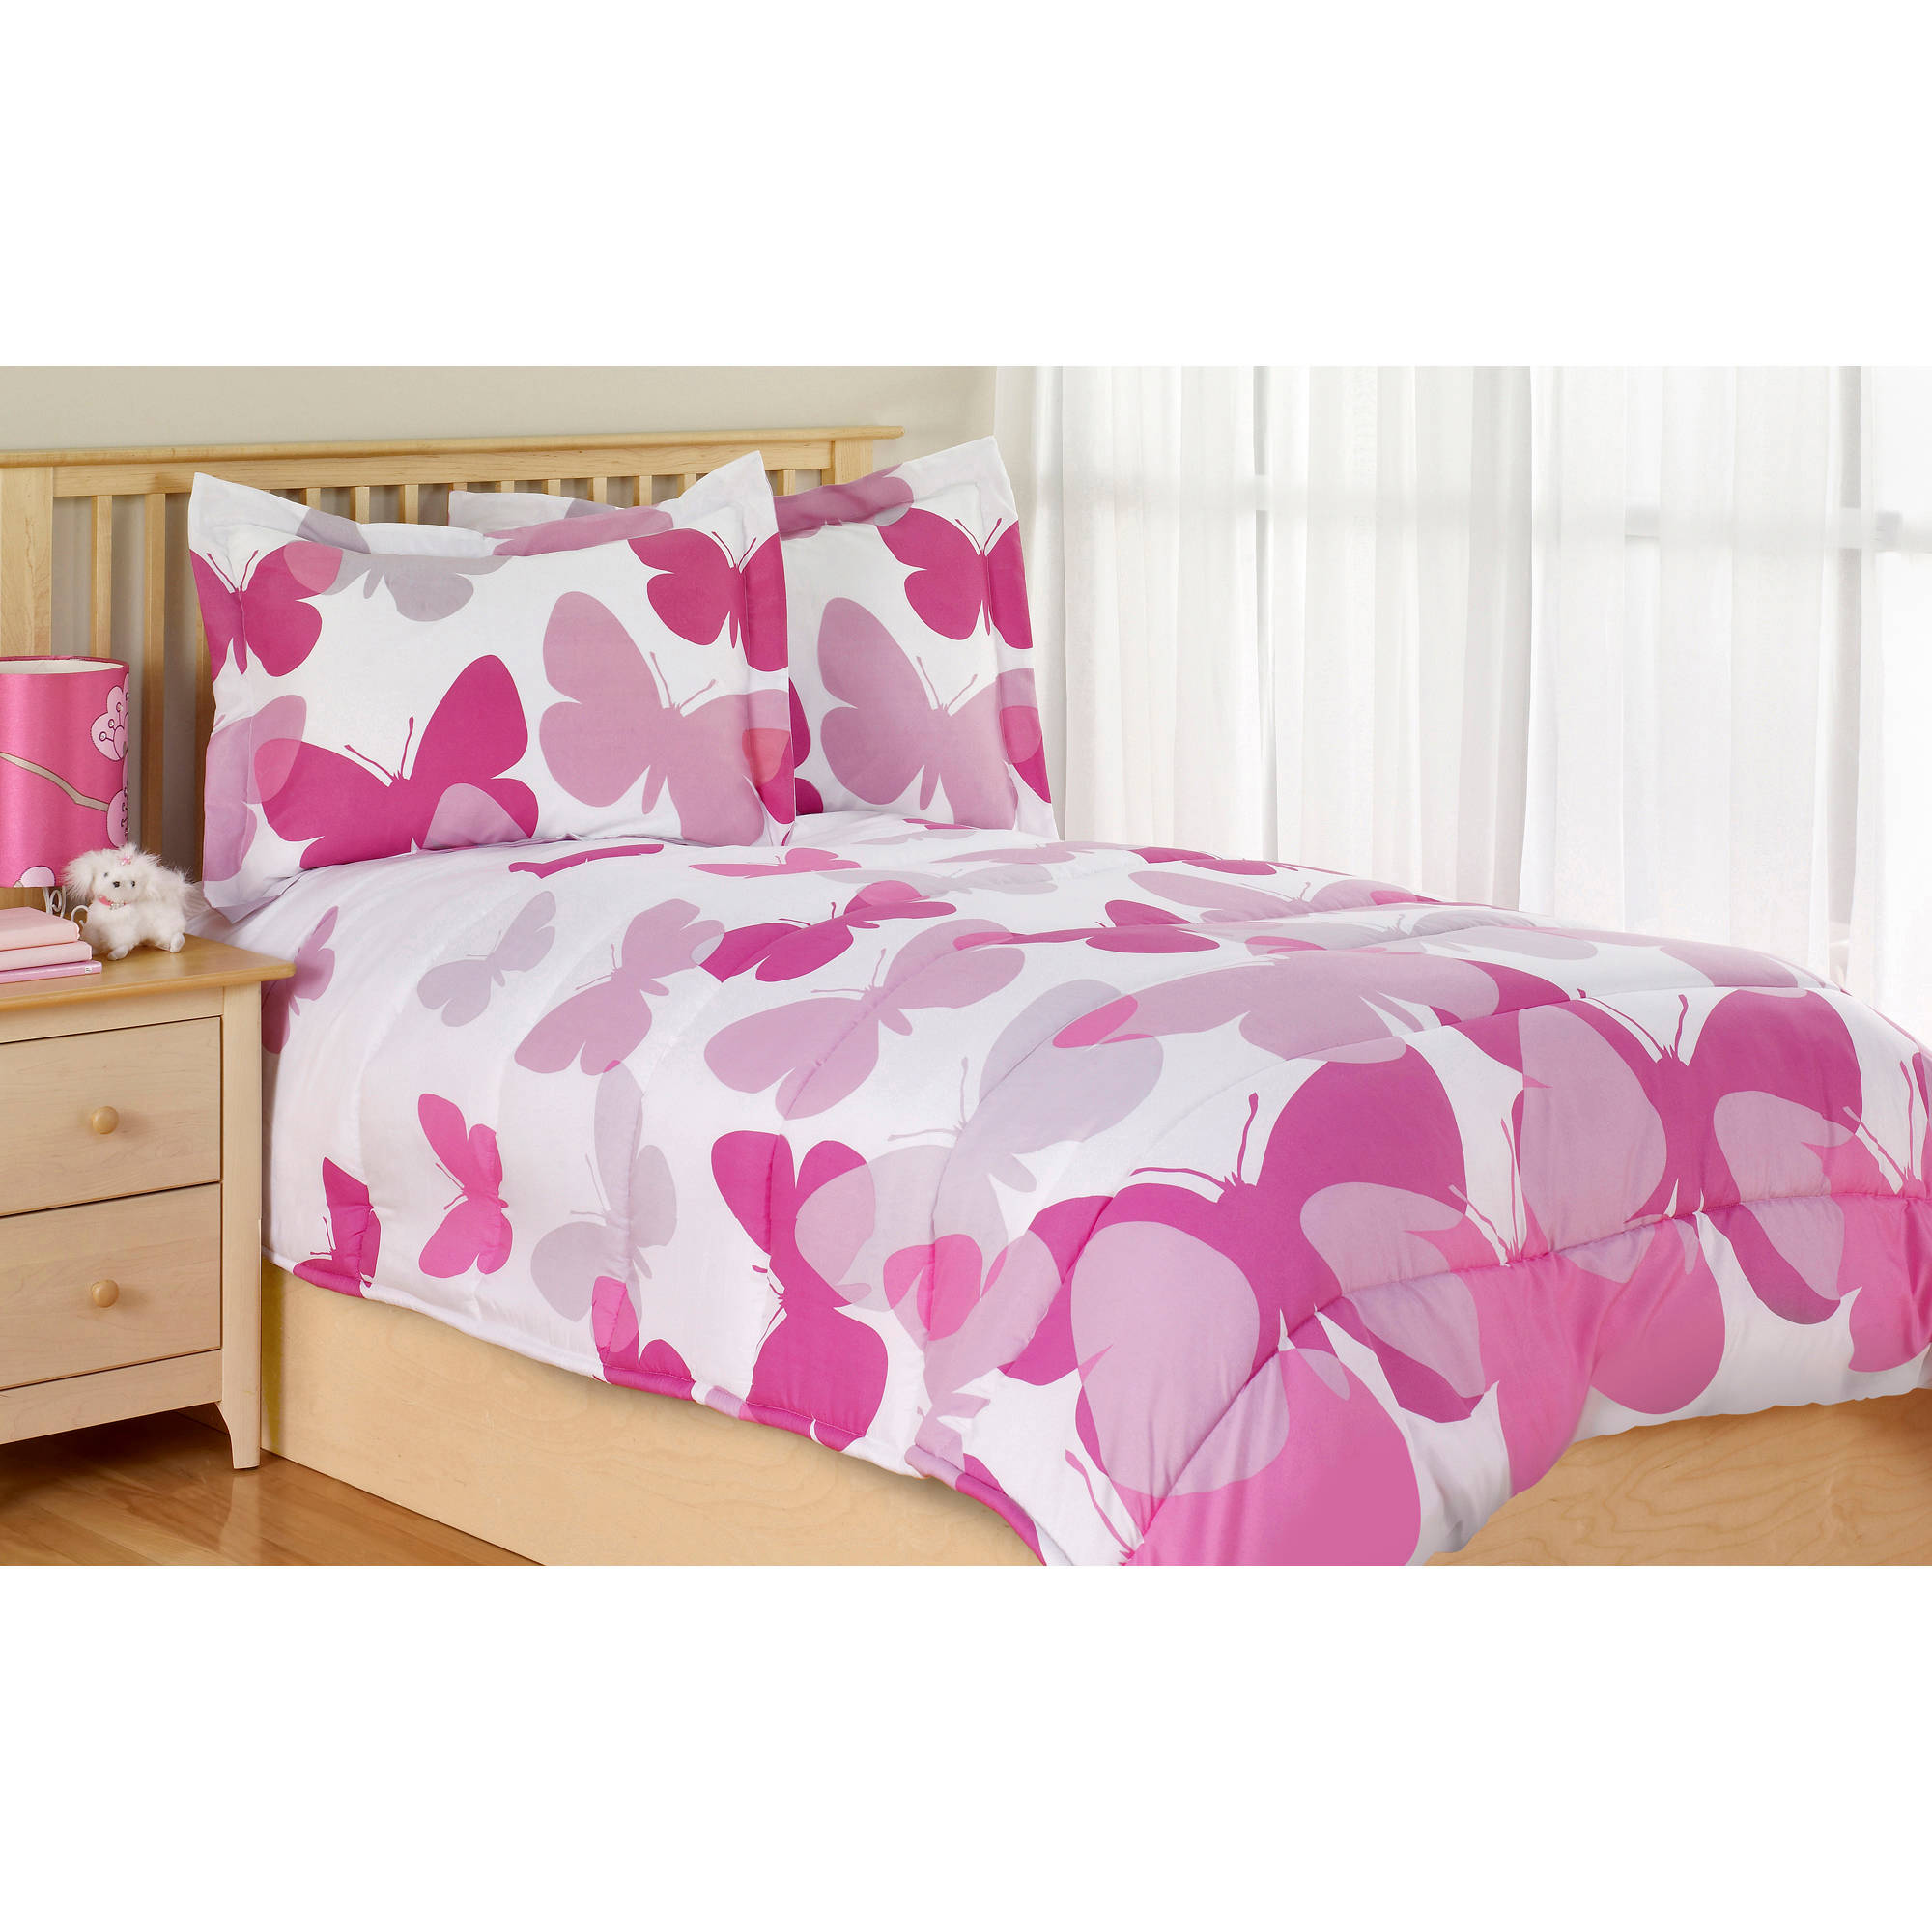 Kids Butterflies Comforter Set